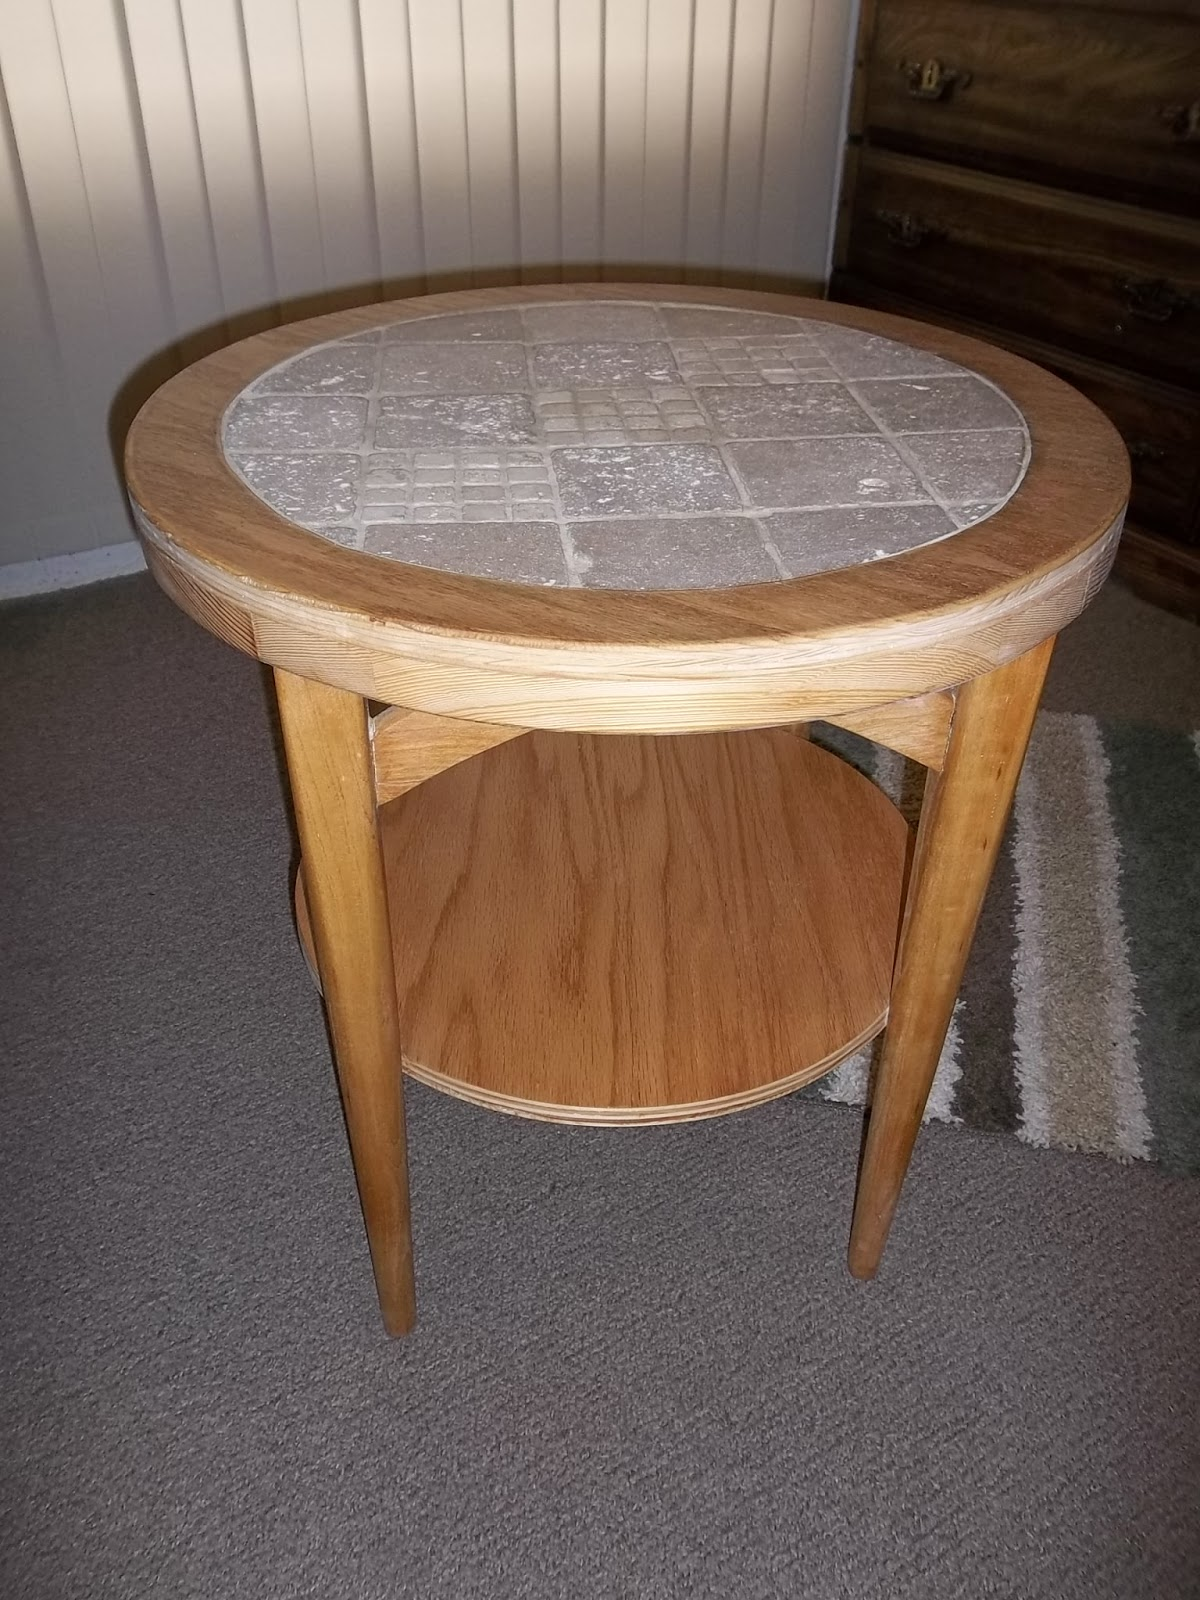 Re Claimed Round Oak End Table $159. SOLD F.O.B. The Dalles, Oregon